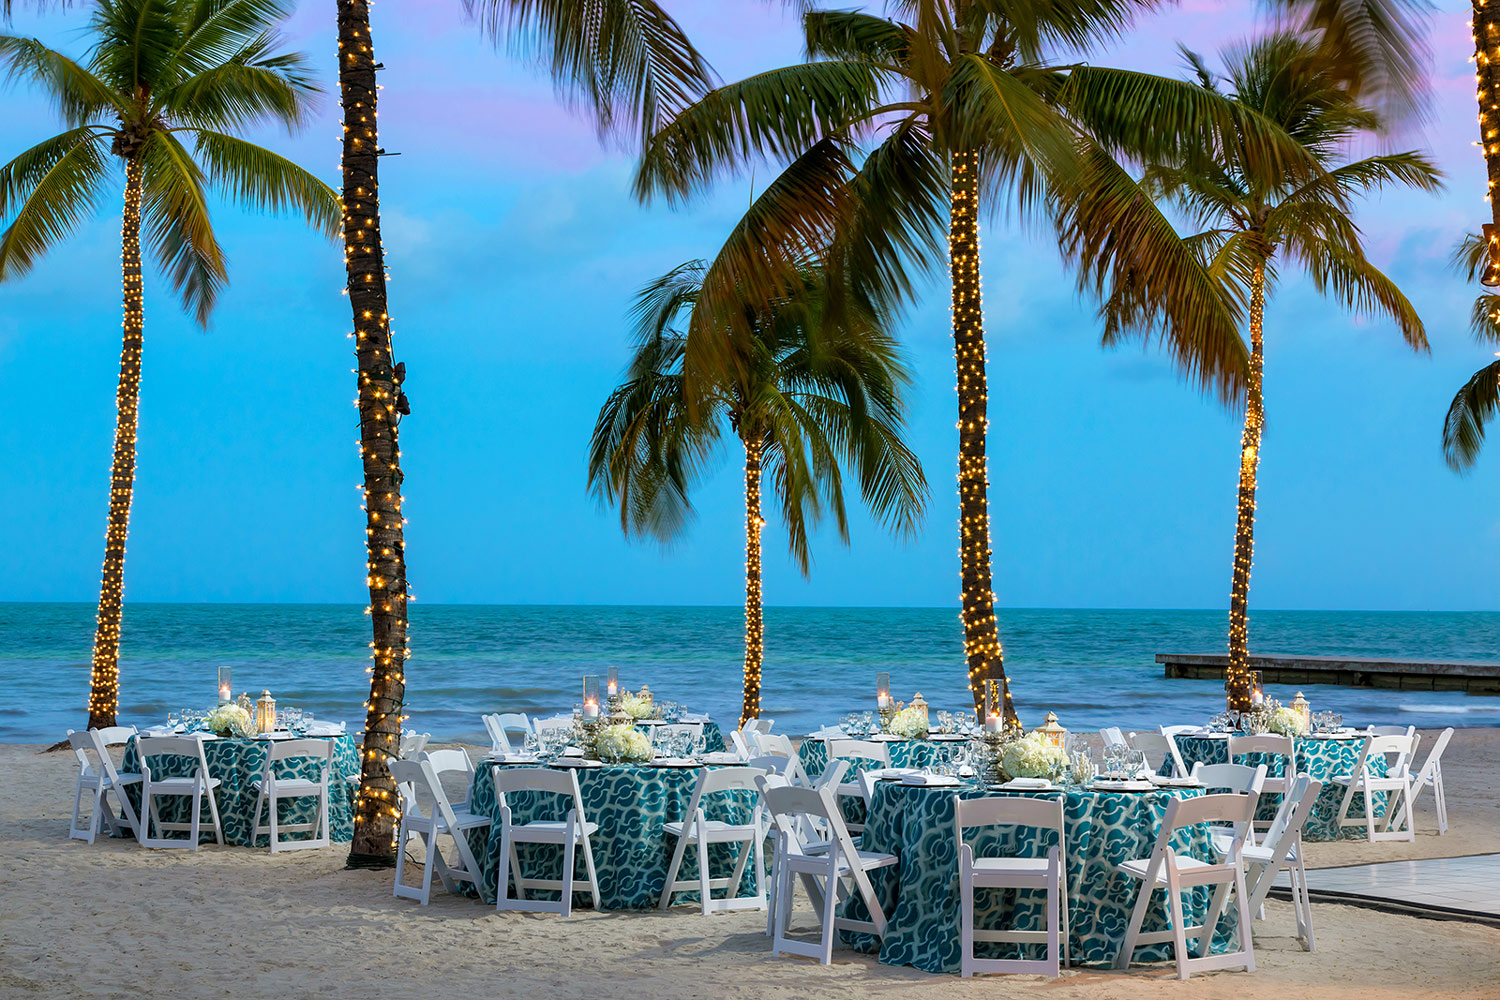 waterfront dining in key west 9 great spots eater miami